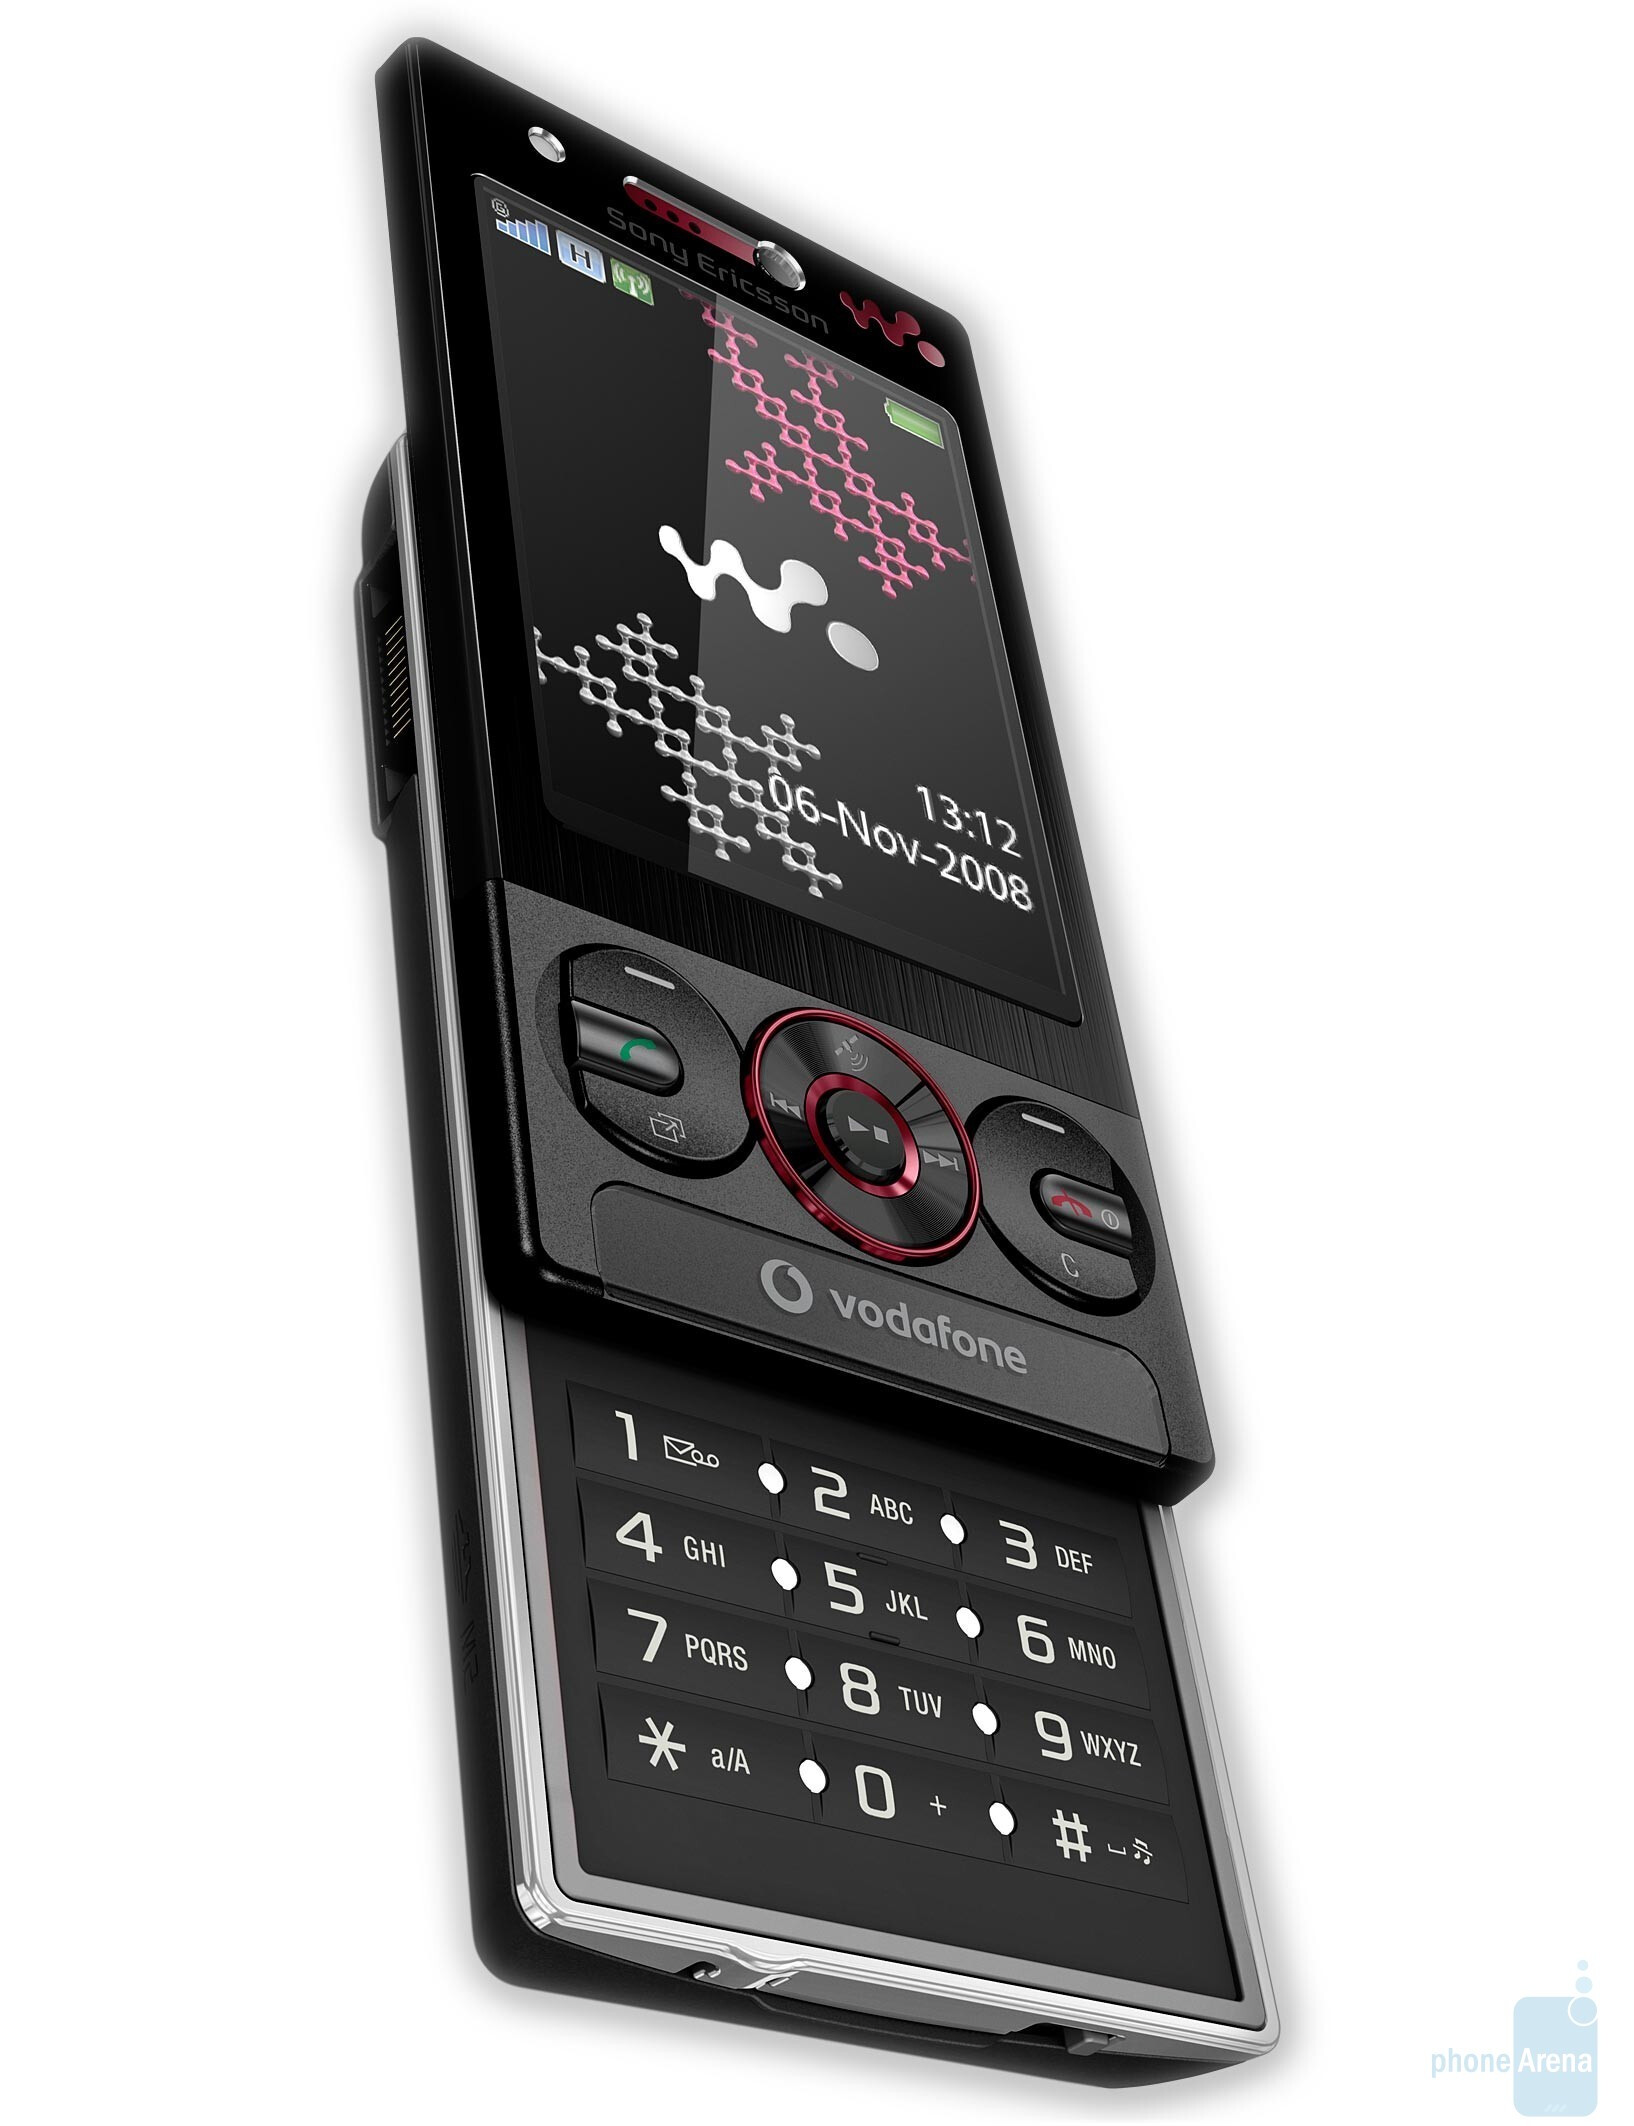 Sony Ericsson with a couple of phones, a couple of updates